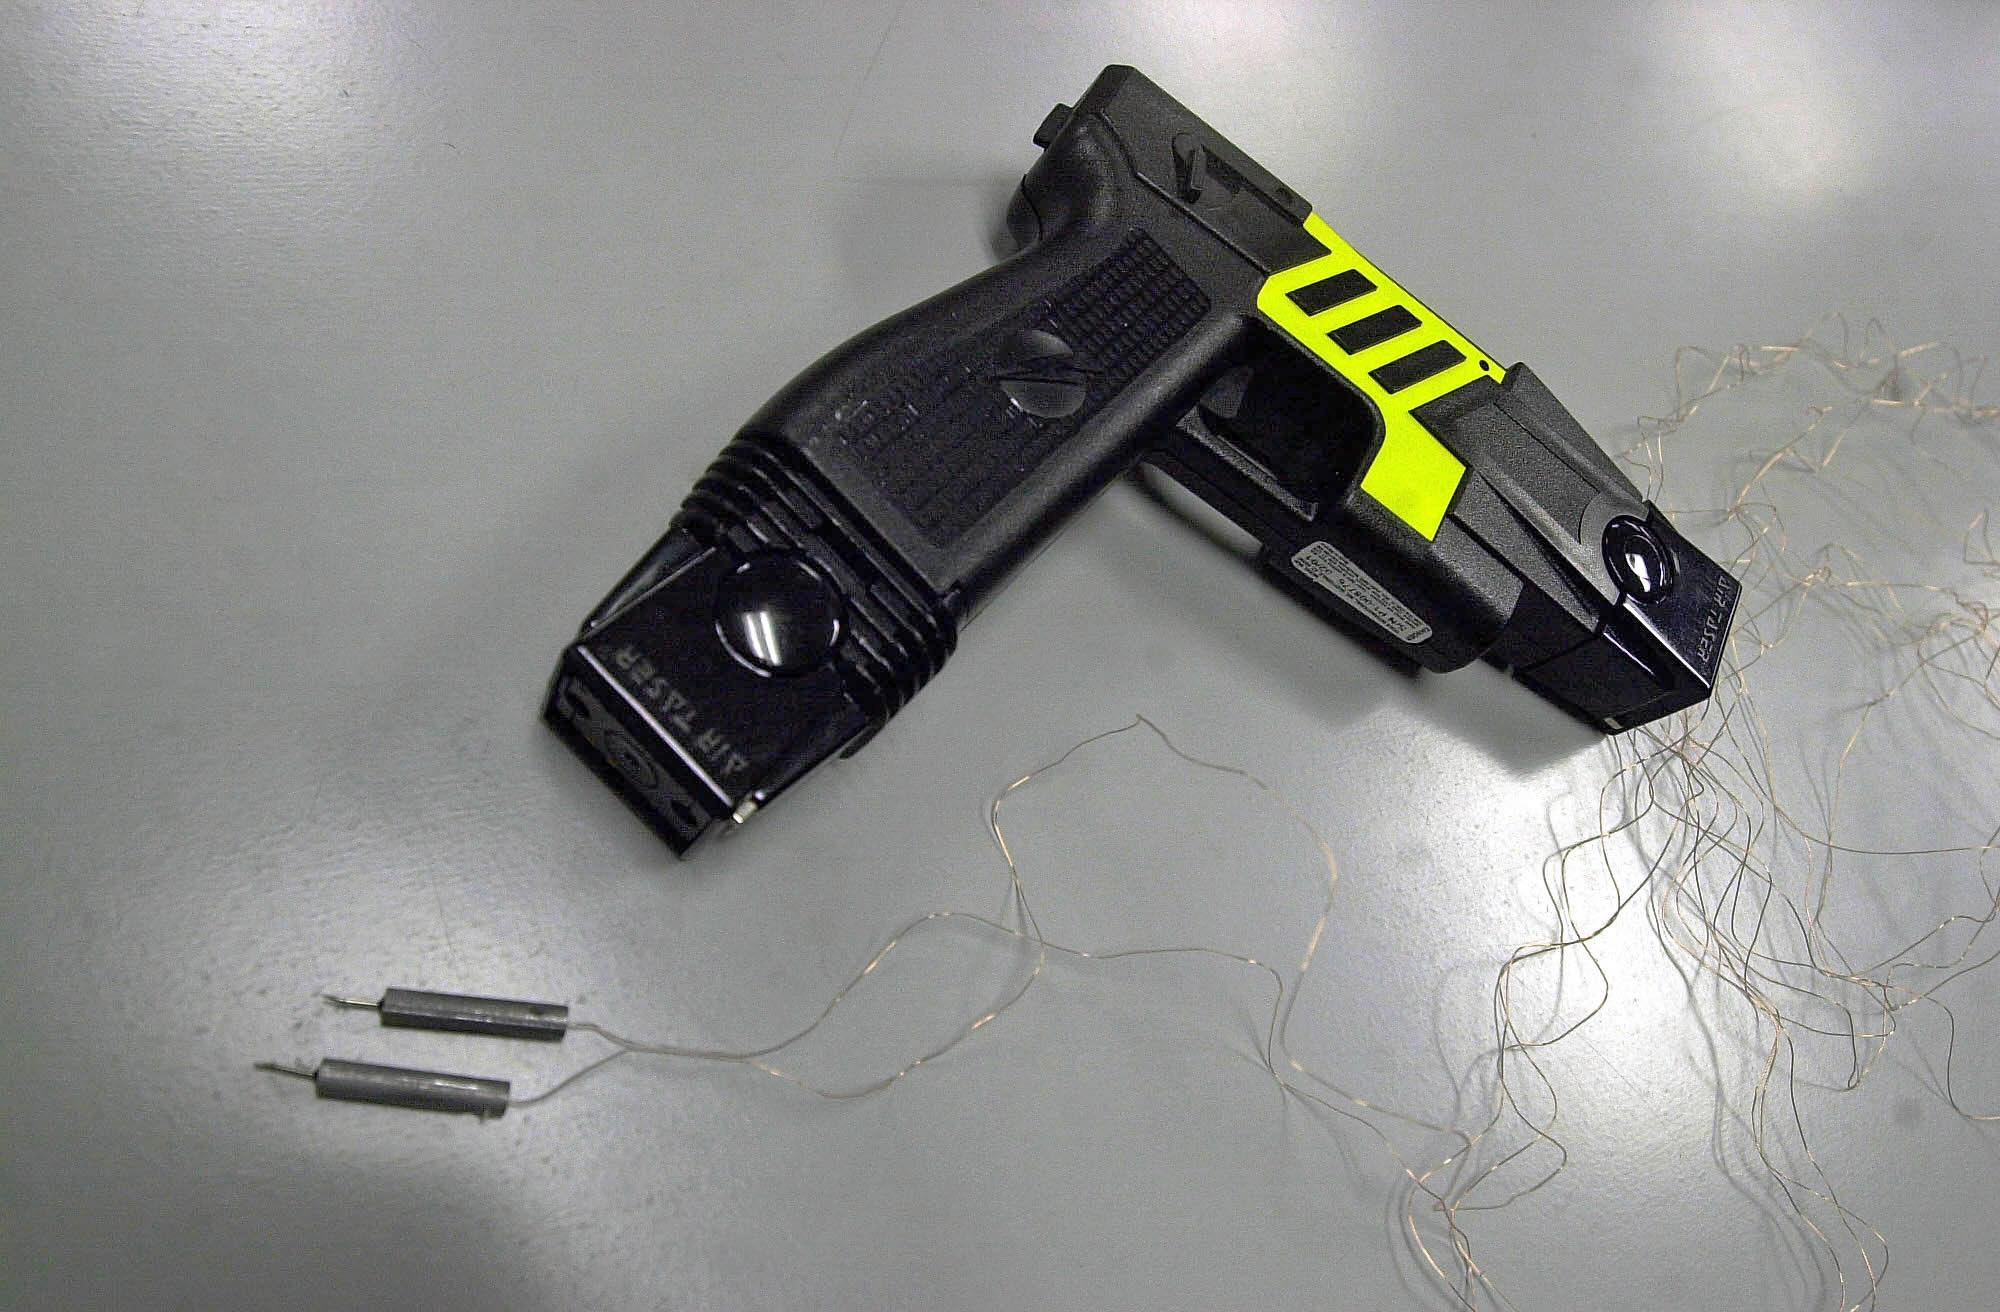 KRT SOUTH STORY SLUGGED: FL-TASERGUNS KRT PHOTO BY RED HUBER/ORLANDO SENTINEL (July 31) A Taser gun administers a non-lethal shock to subdue criminals. (OR) NC KD 2002 (Horiz) (gsb)